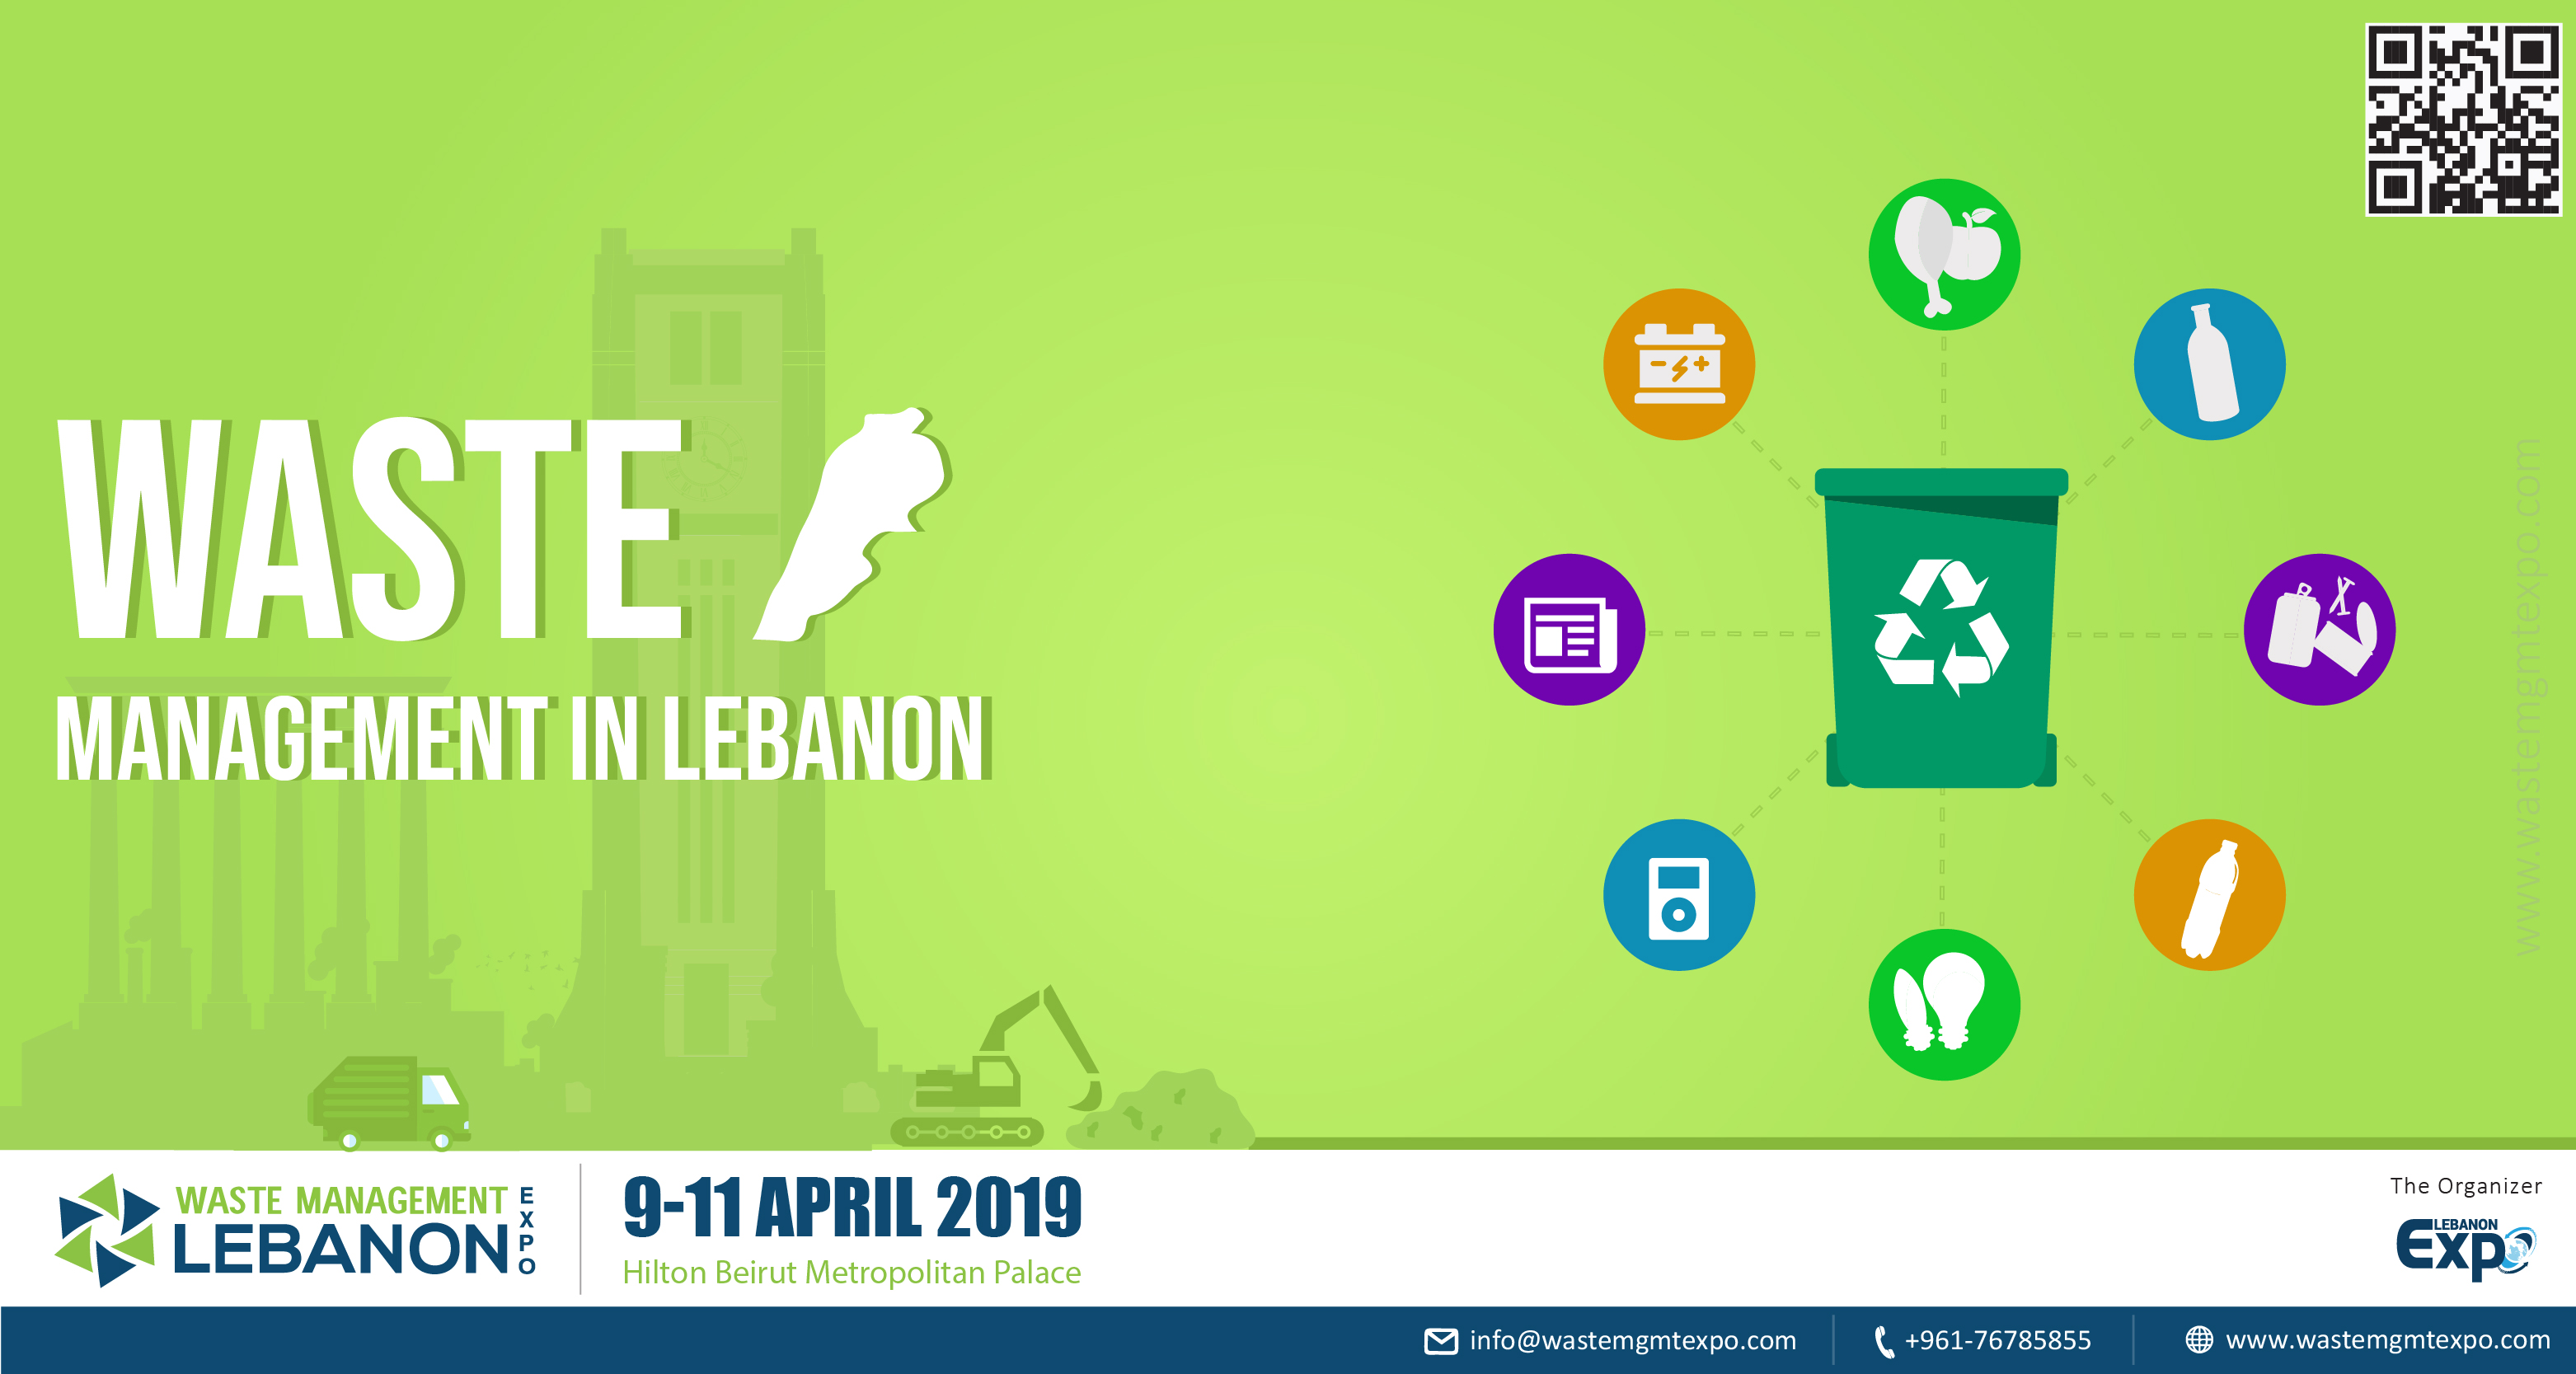 Waste management Lebanon